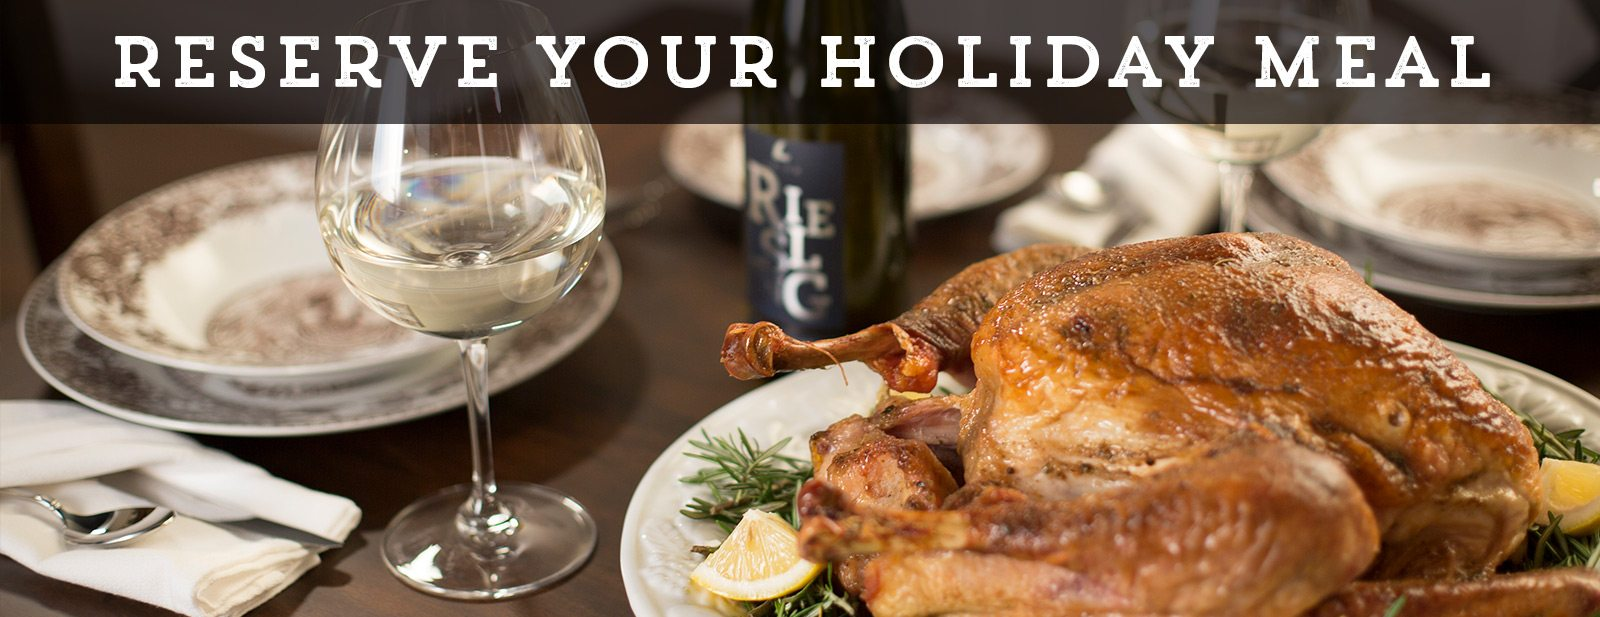 Reserve your holiday meal